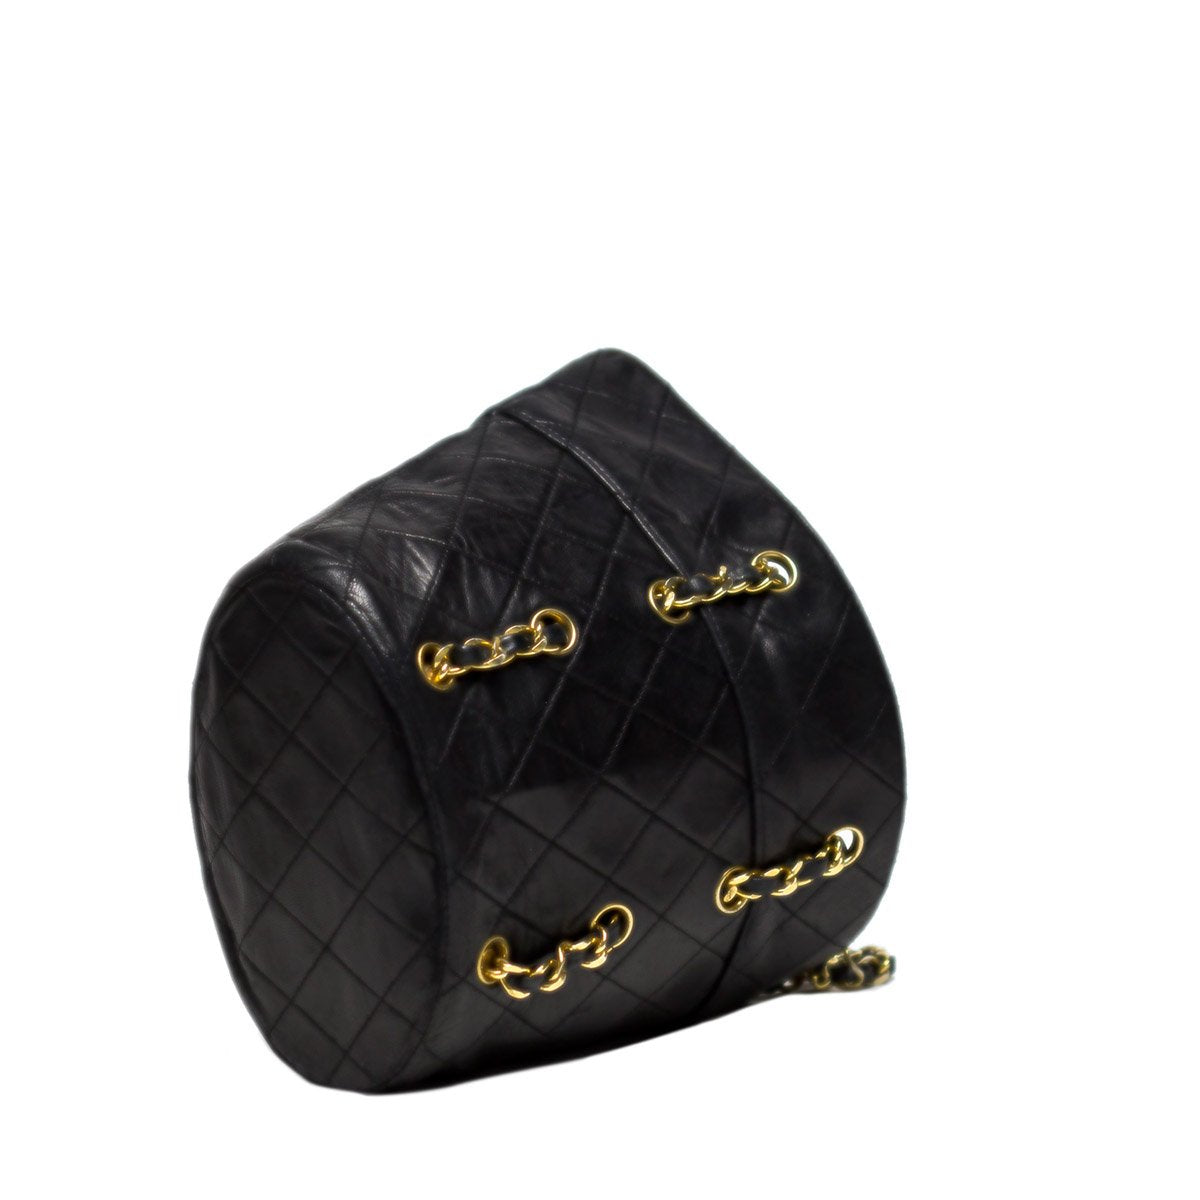 Chanel Interwoven Chain Bucket Tote